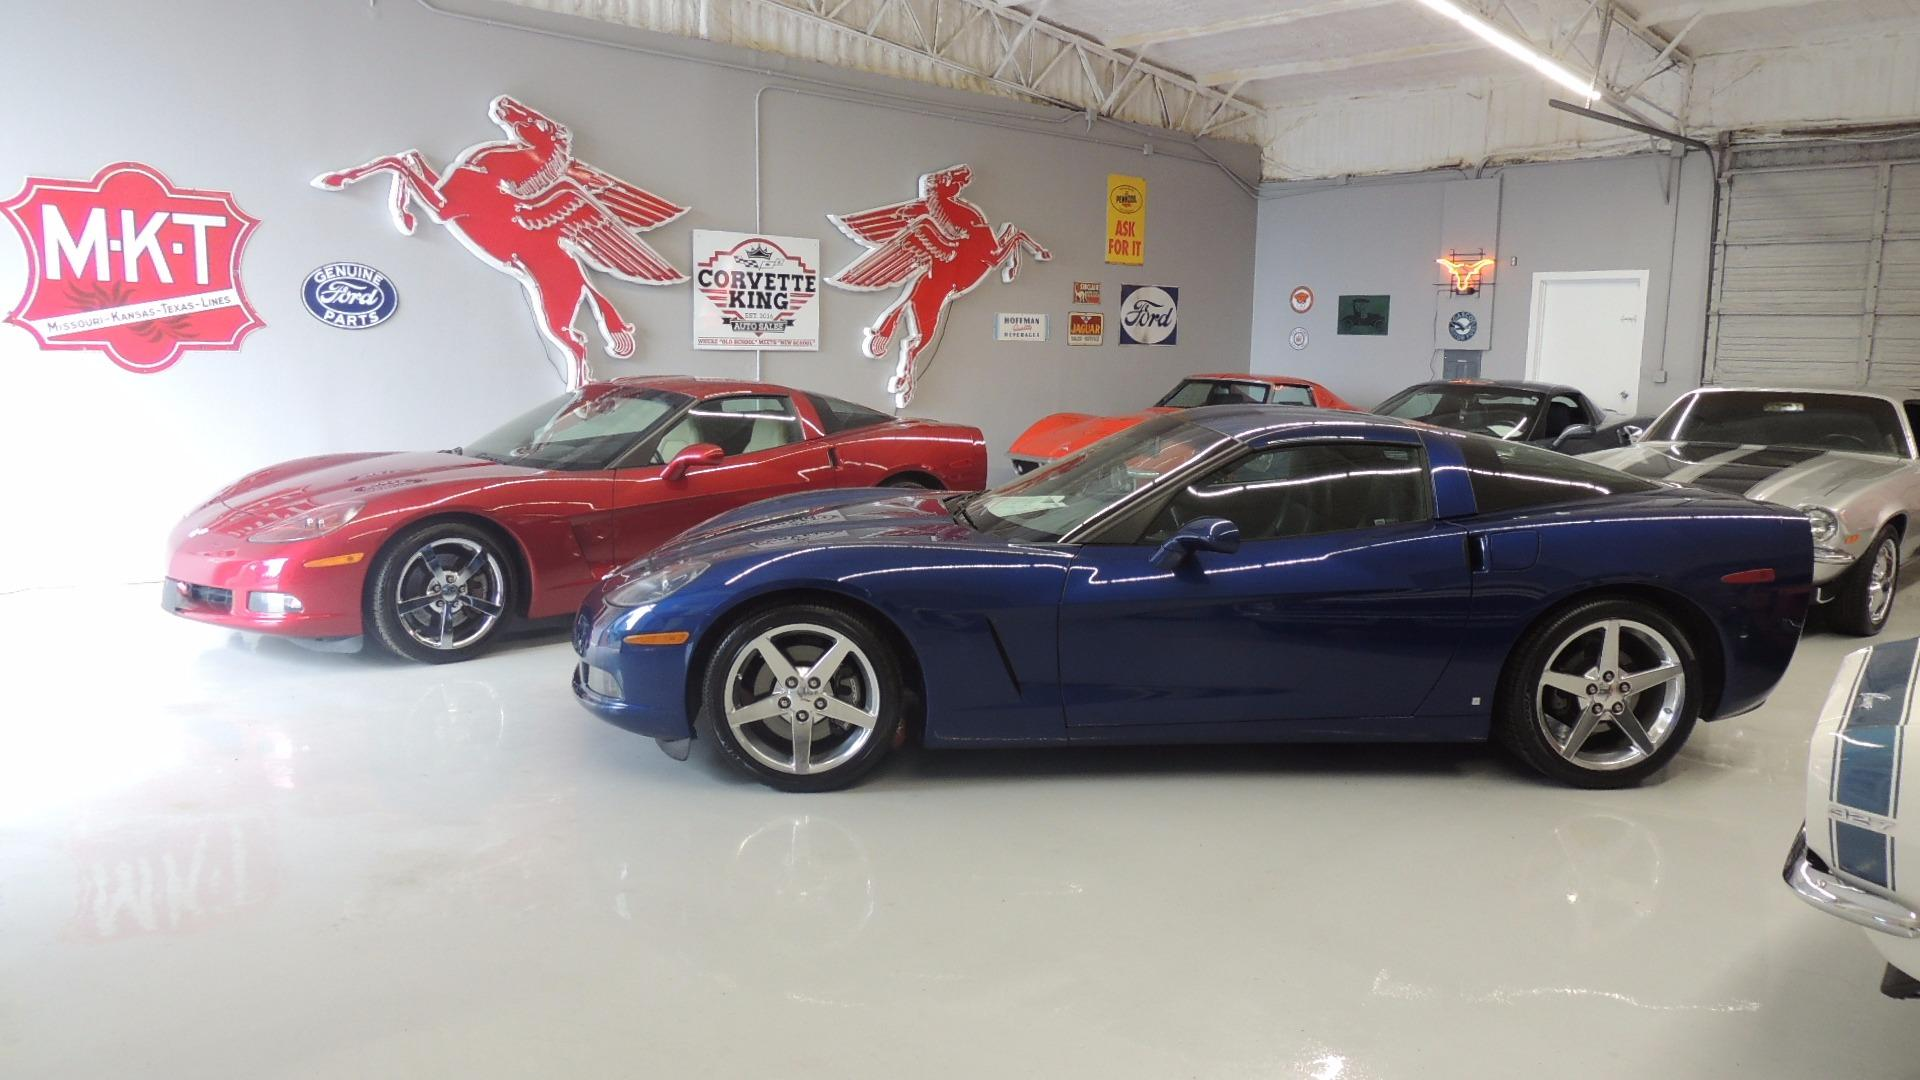 Corvette King Auto Sales image 3